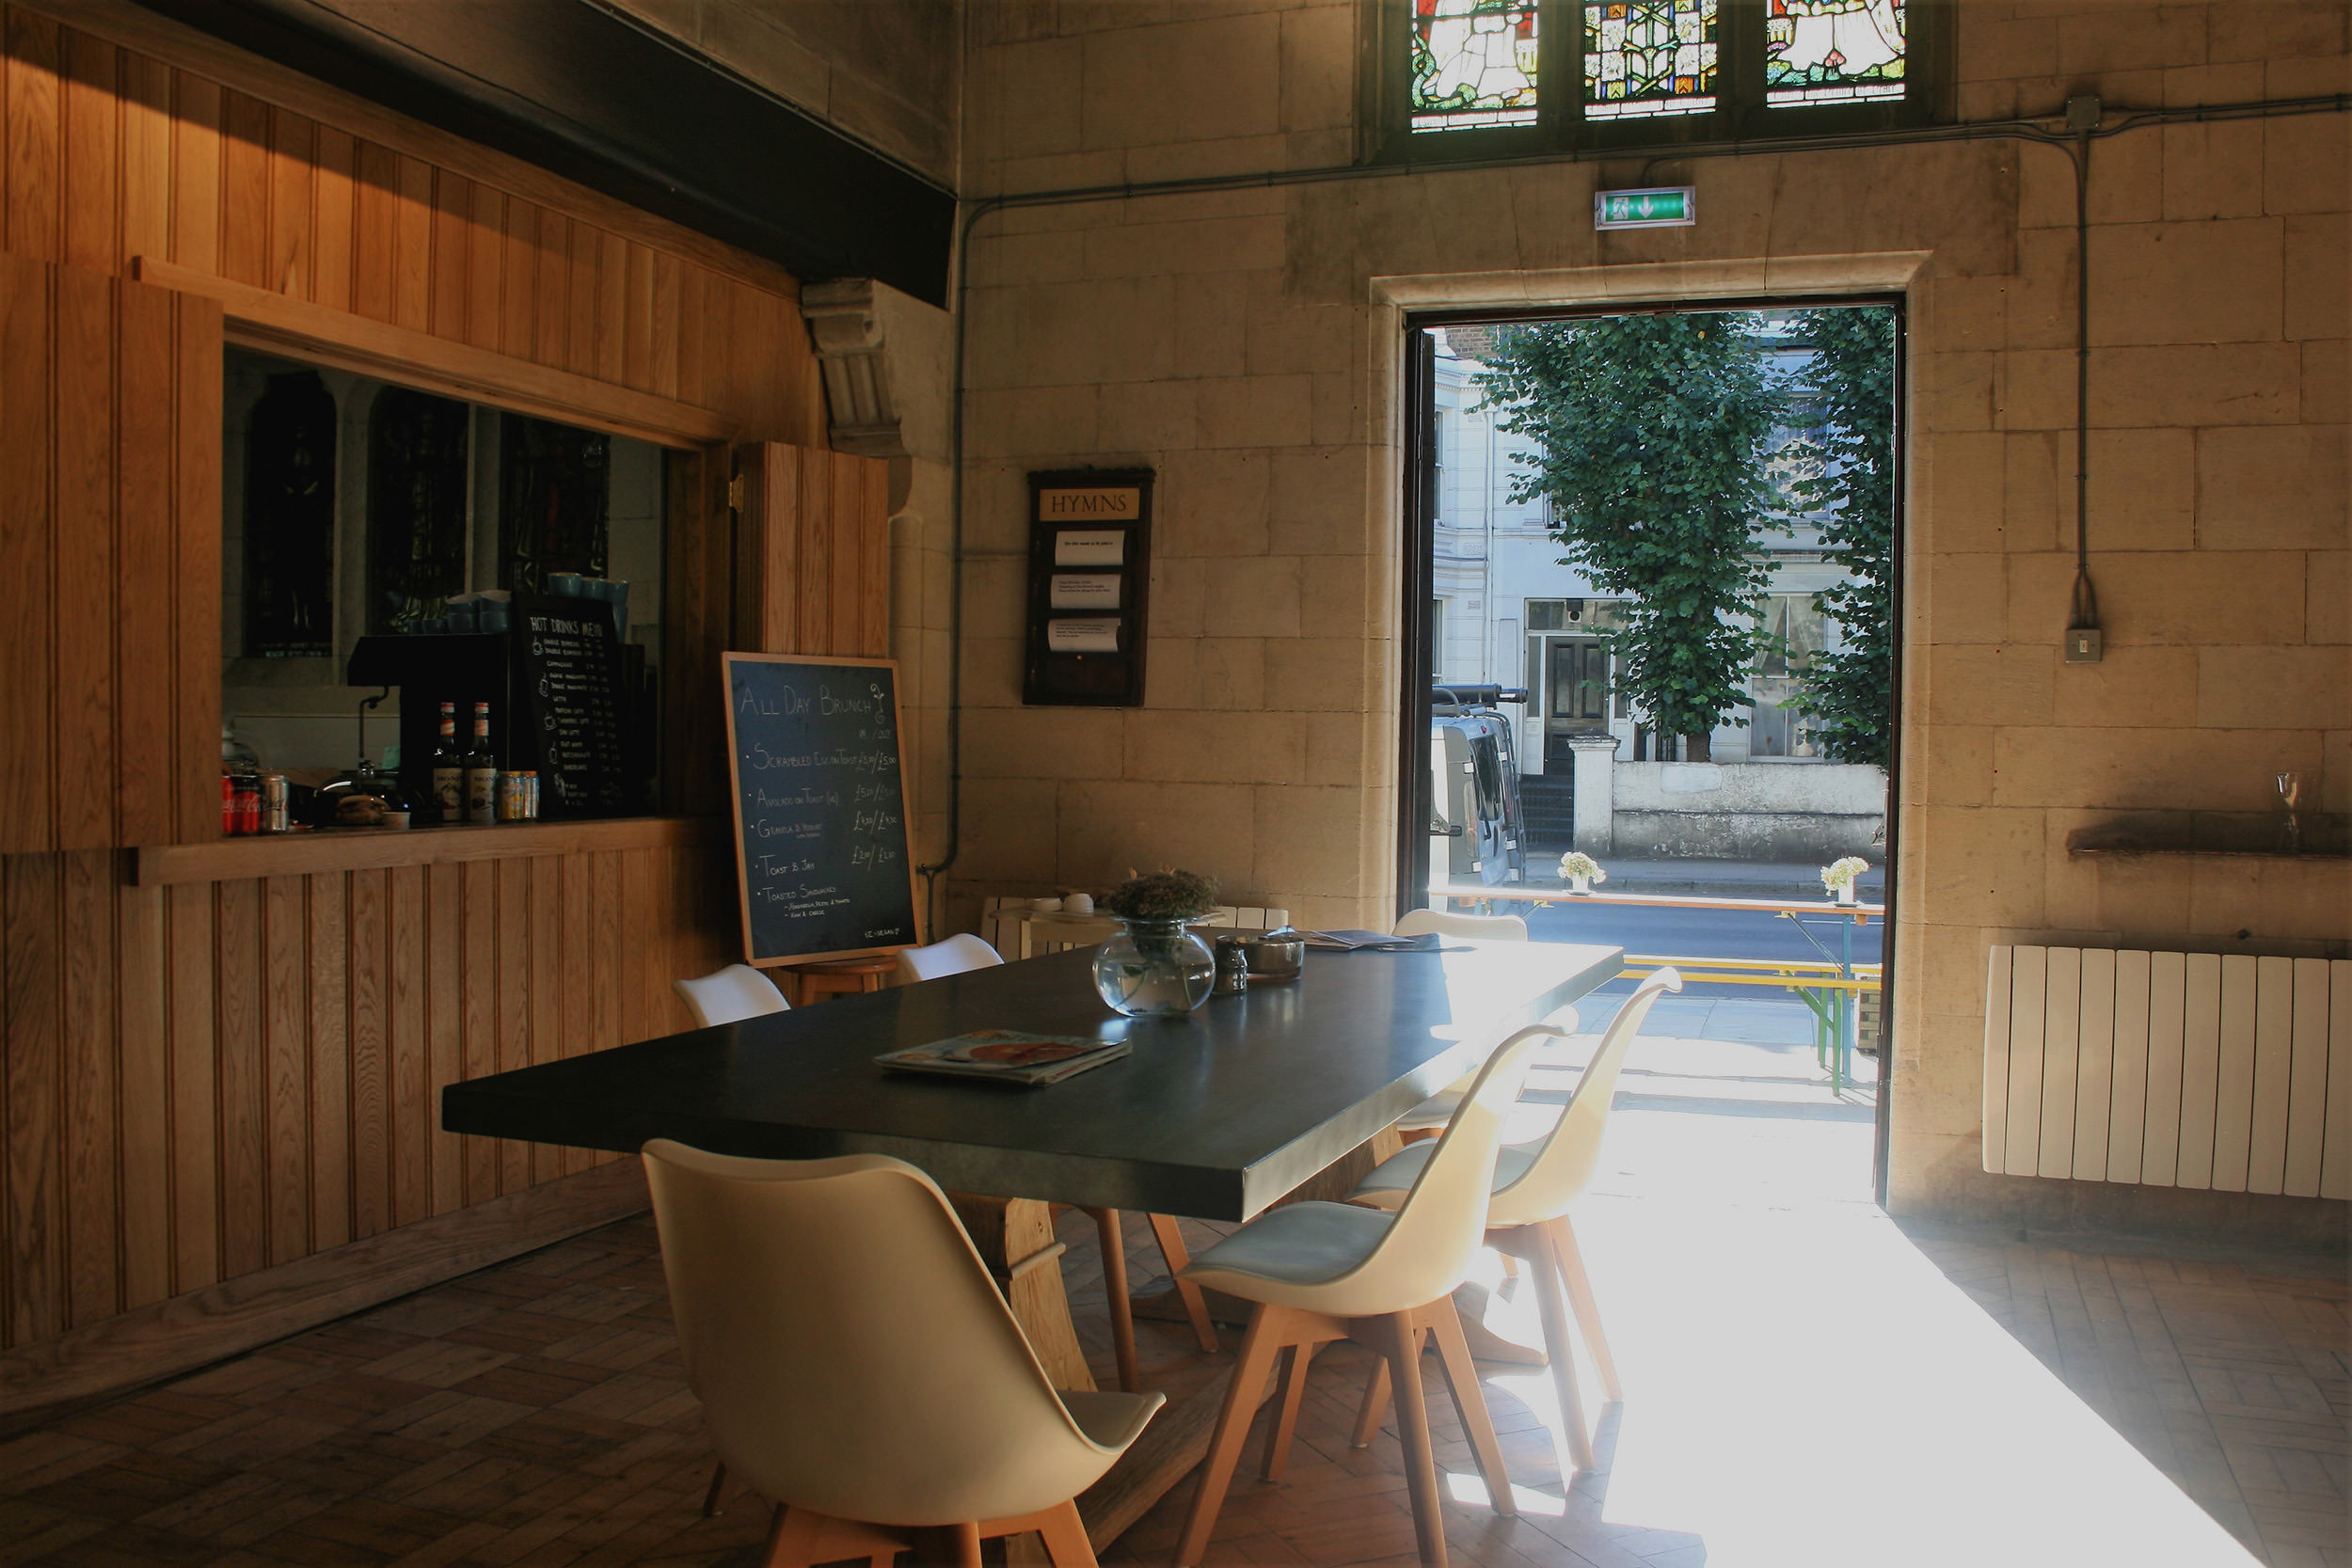 St John's Community Space & Café - Capacity: 15 sitting or 25 standingHourly rate: £20